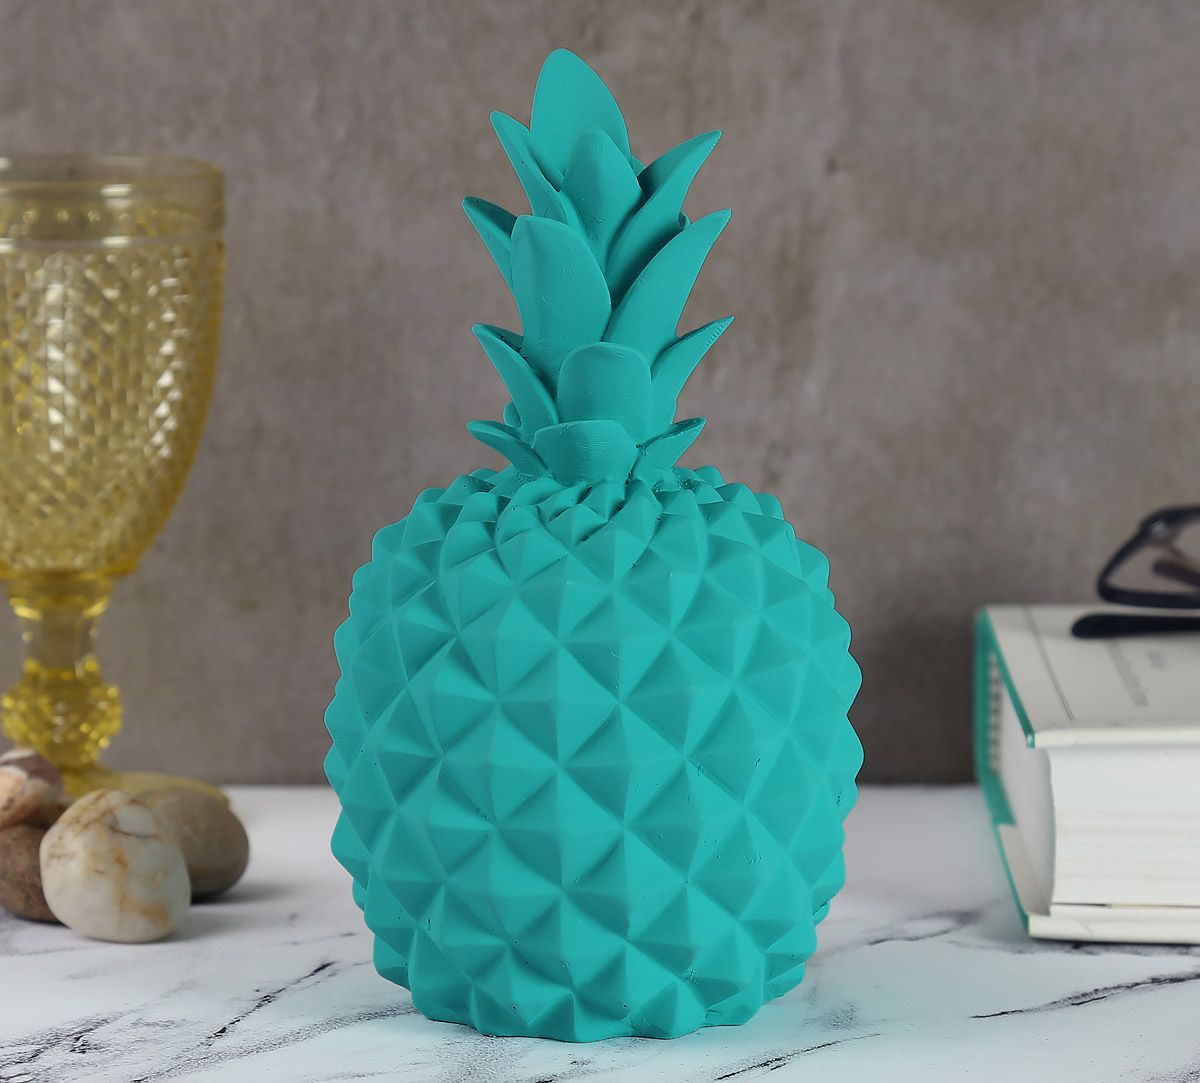 Teal Pineapple Decor Accent